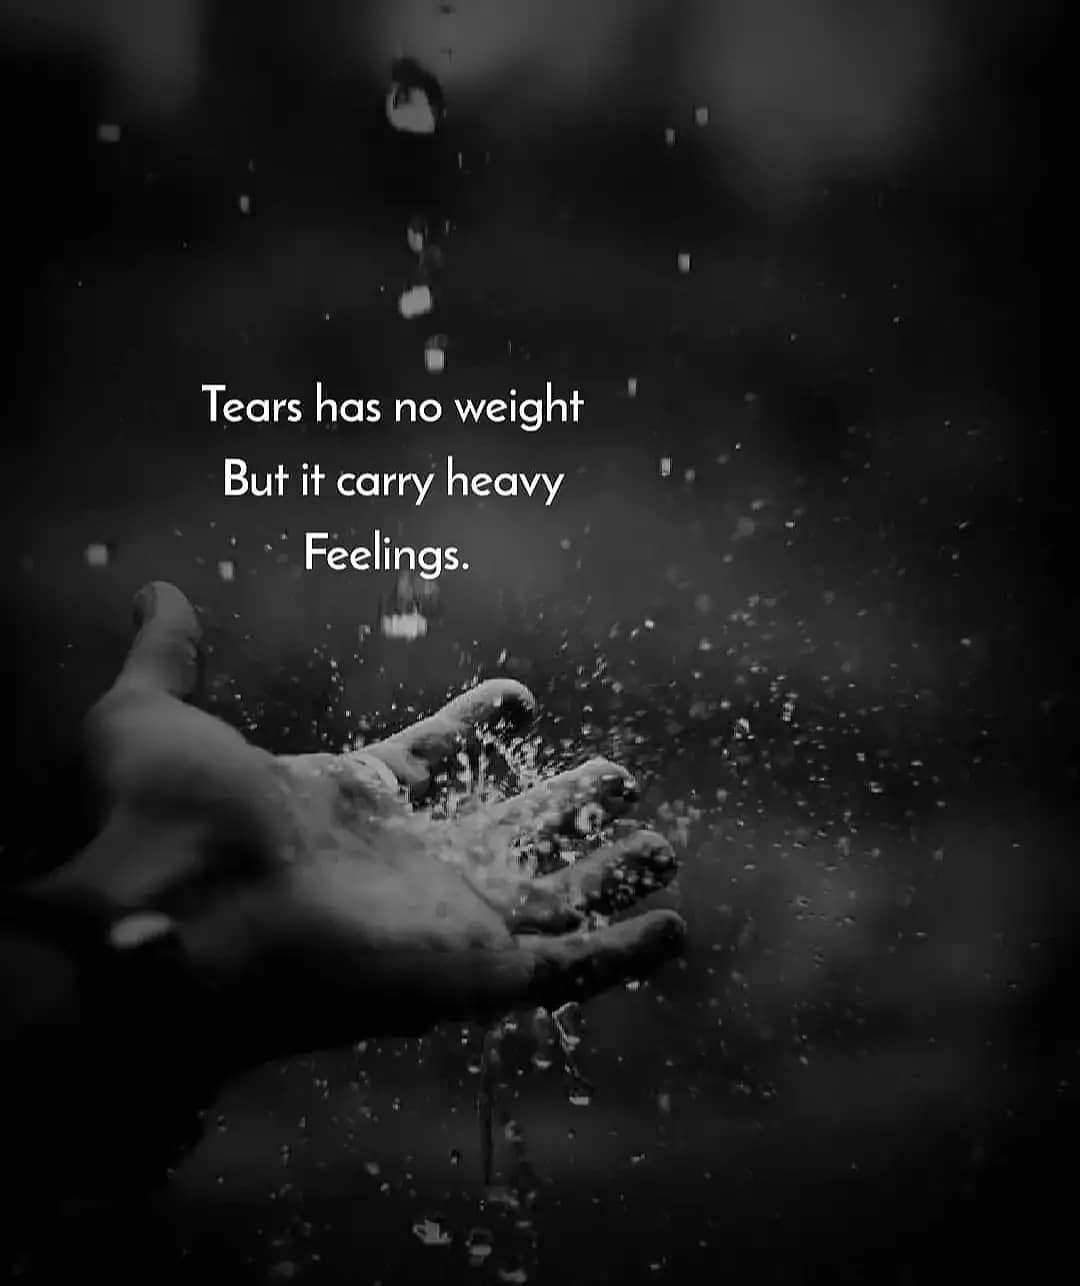 Being Hurt Quotes-Love Hurt Quotes | Pain Quotes, Being Hurt Quotes and Sayings | Pain Quotes | Top Quotes About Being Hurt by Someone Close to You